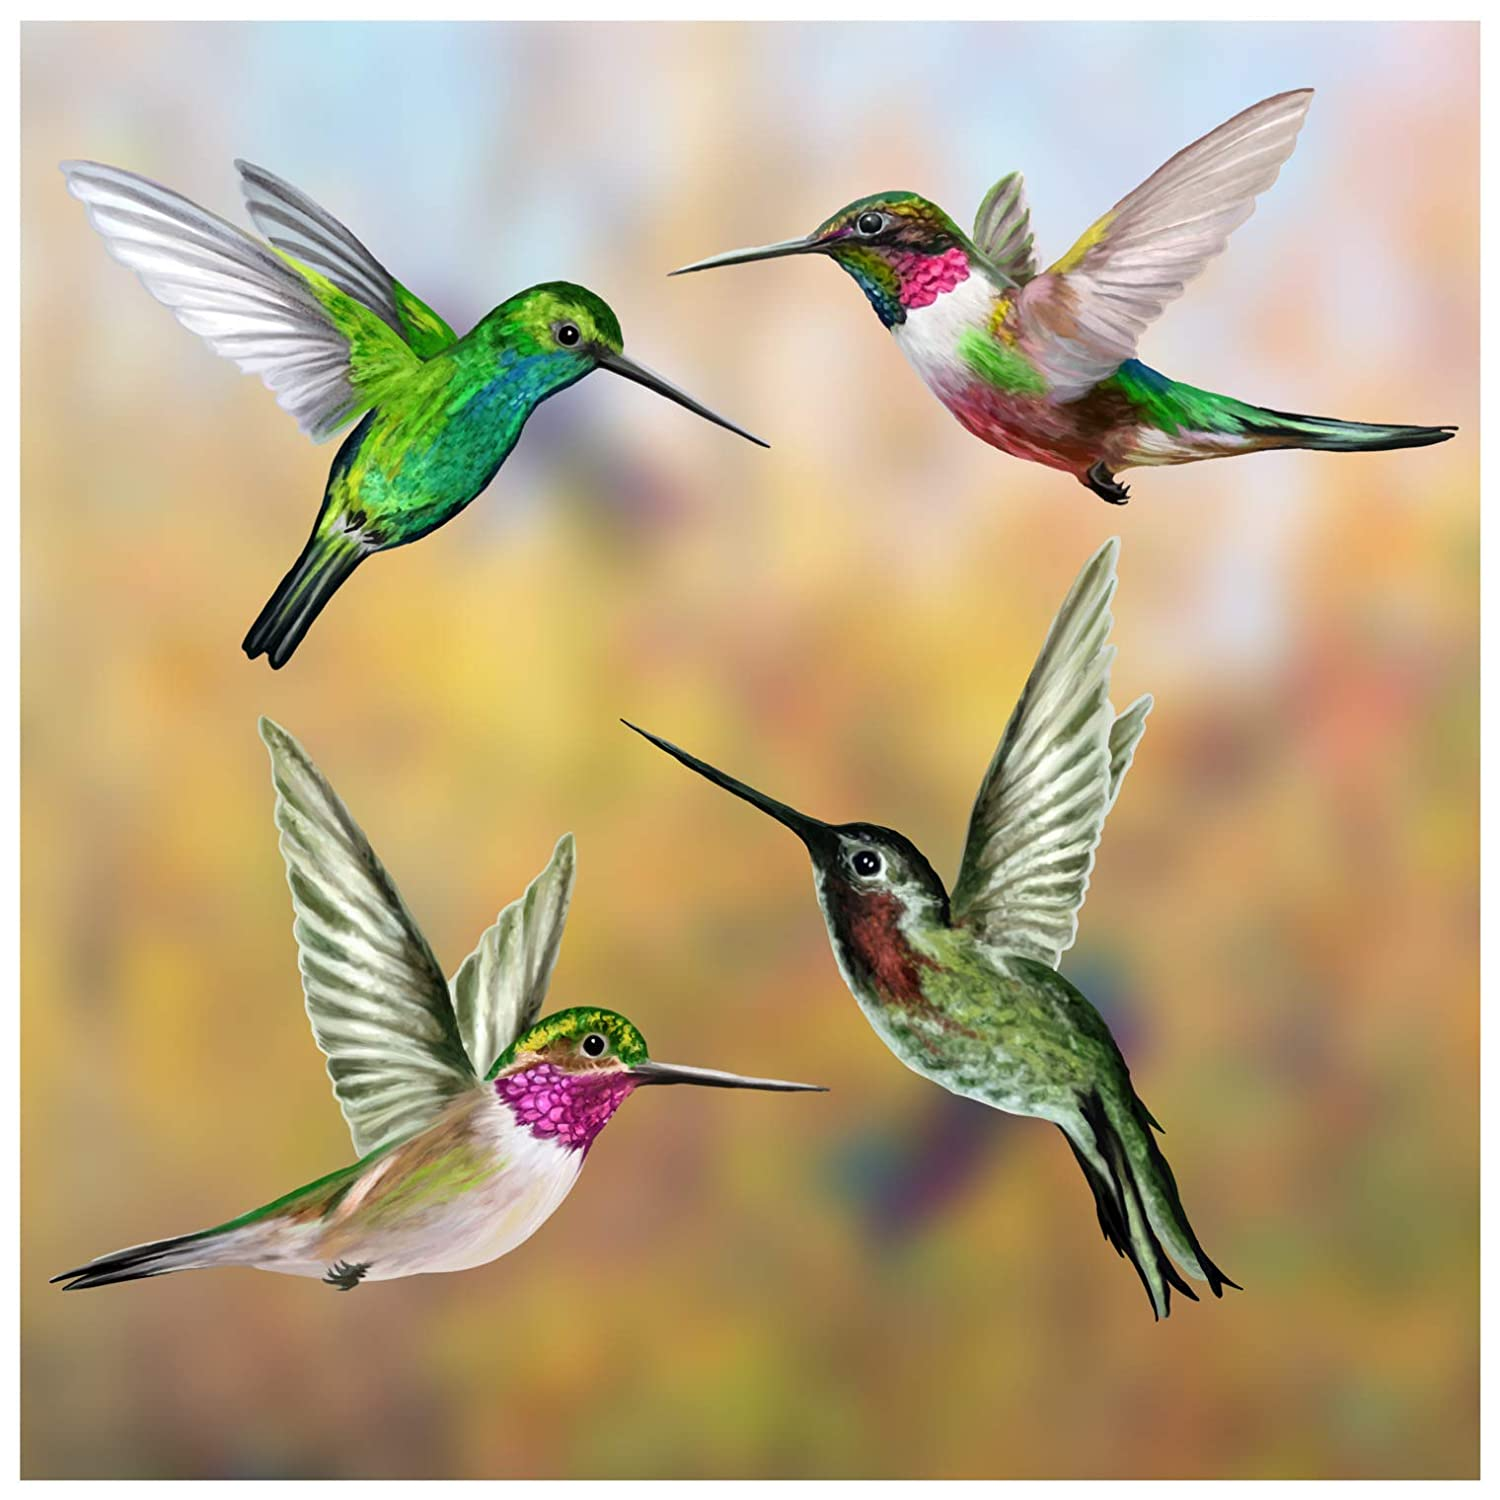 Set of 4 Hummingbird Window Clings Anti-Collision Window Clings//Decals to Prevent Bird Strikes on Window Glass